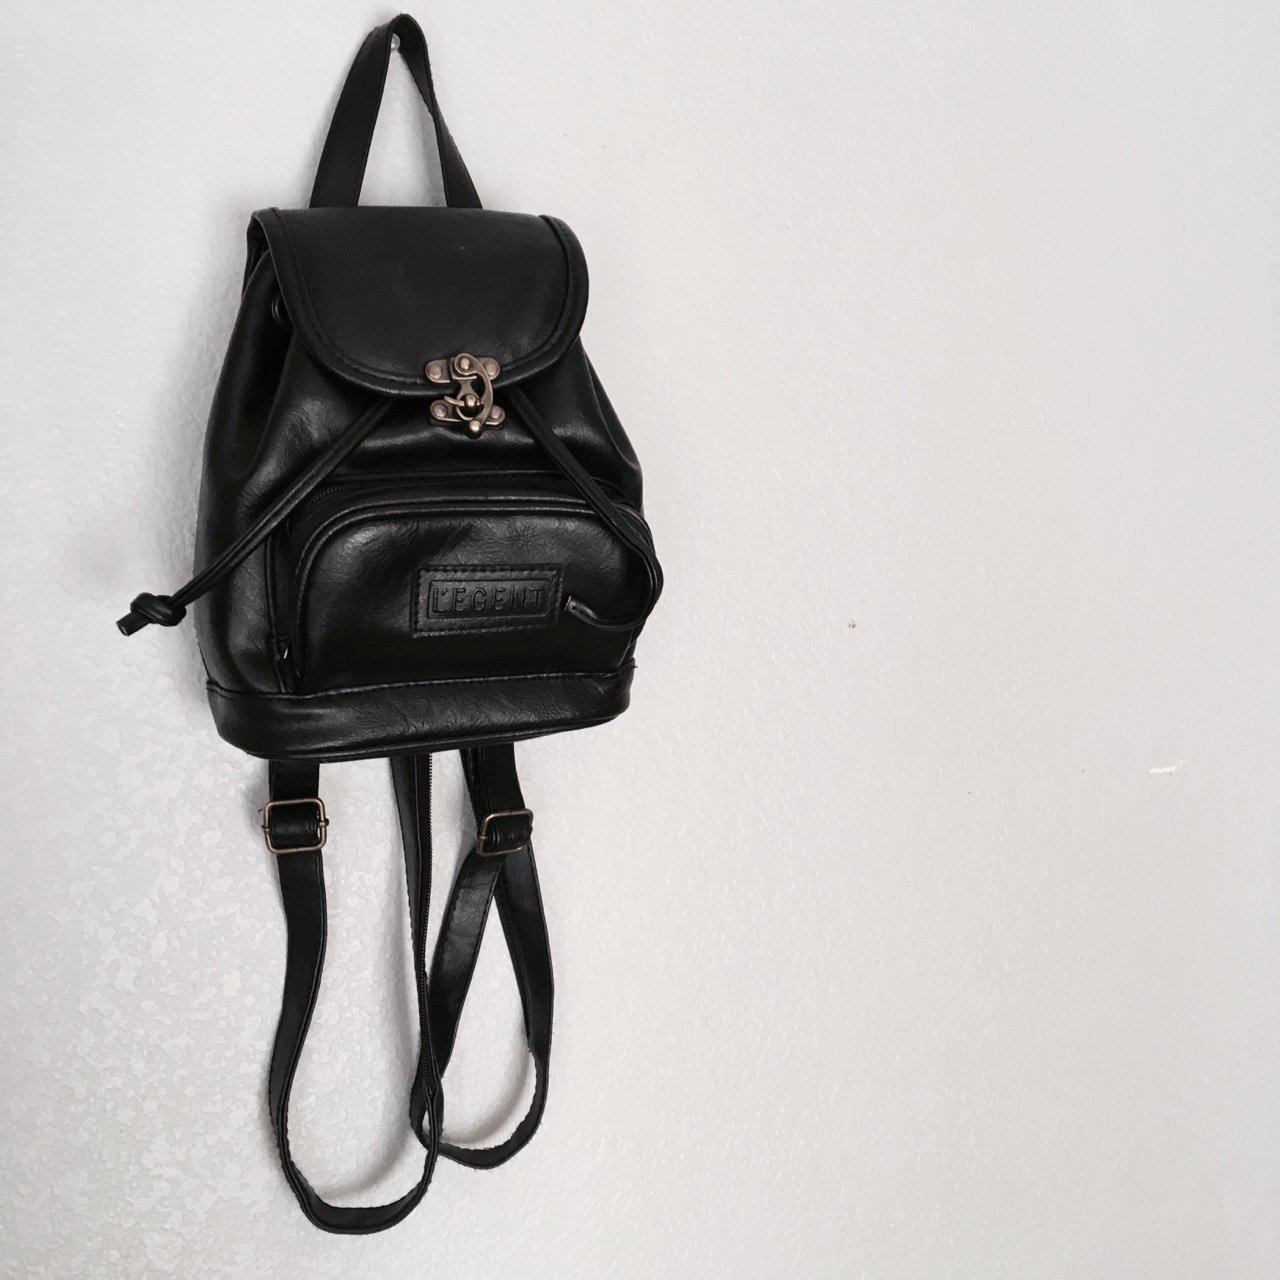 Little black faux leather backpack purse. Small and simple. - Depop 481c41a6d63df